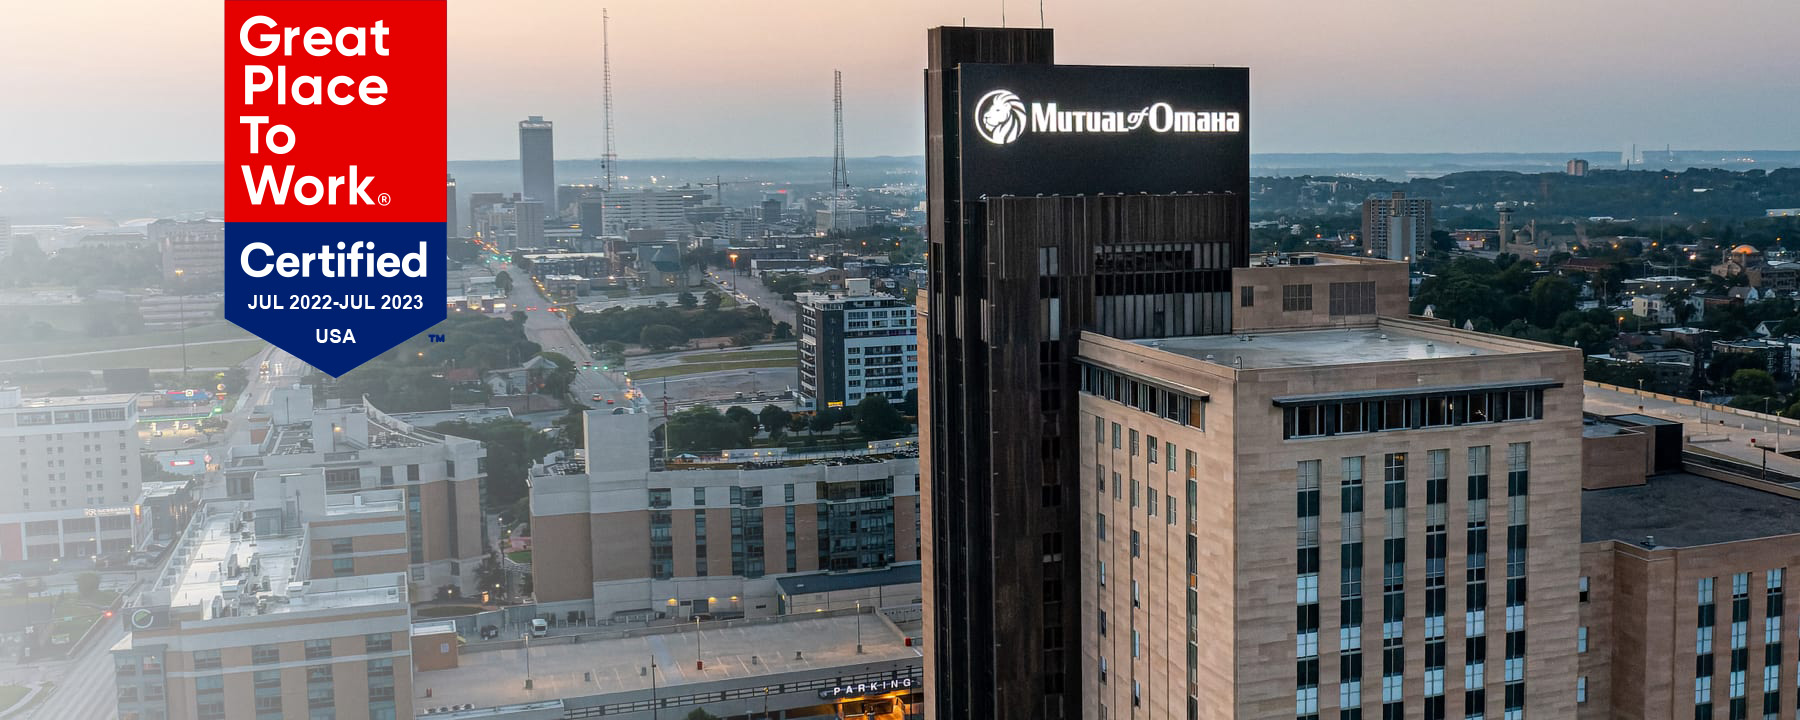 view of mutual of omaha building from a drone